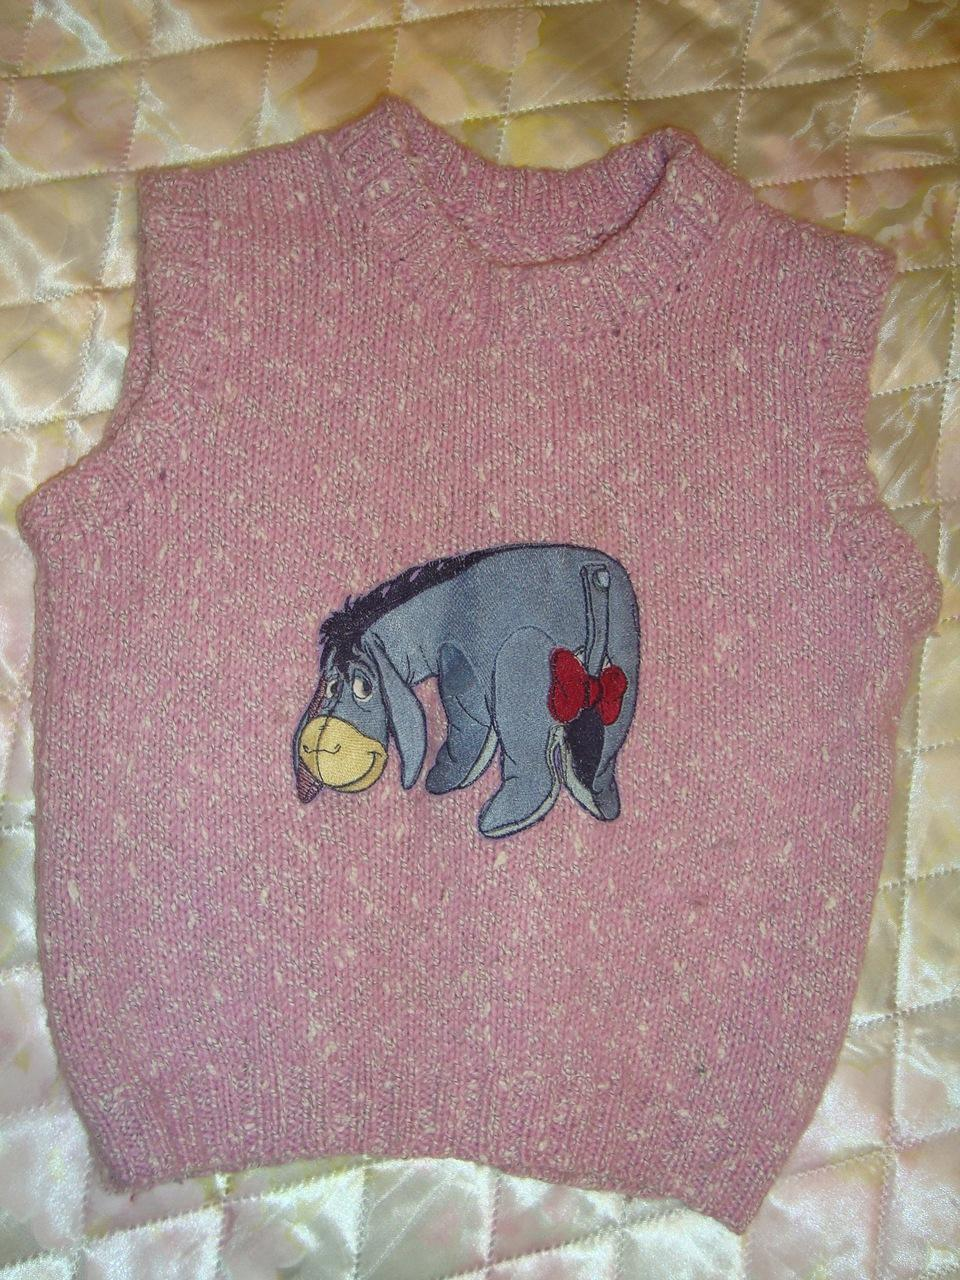 Knitting sweater with eeyore machine embroidery design